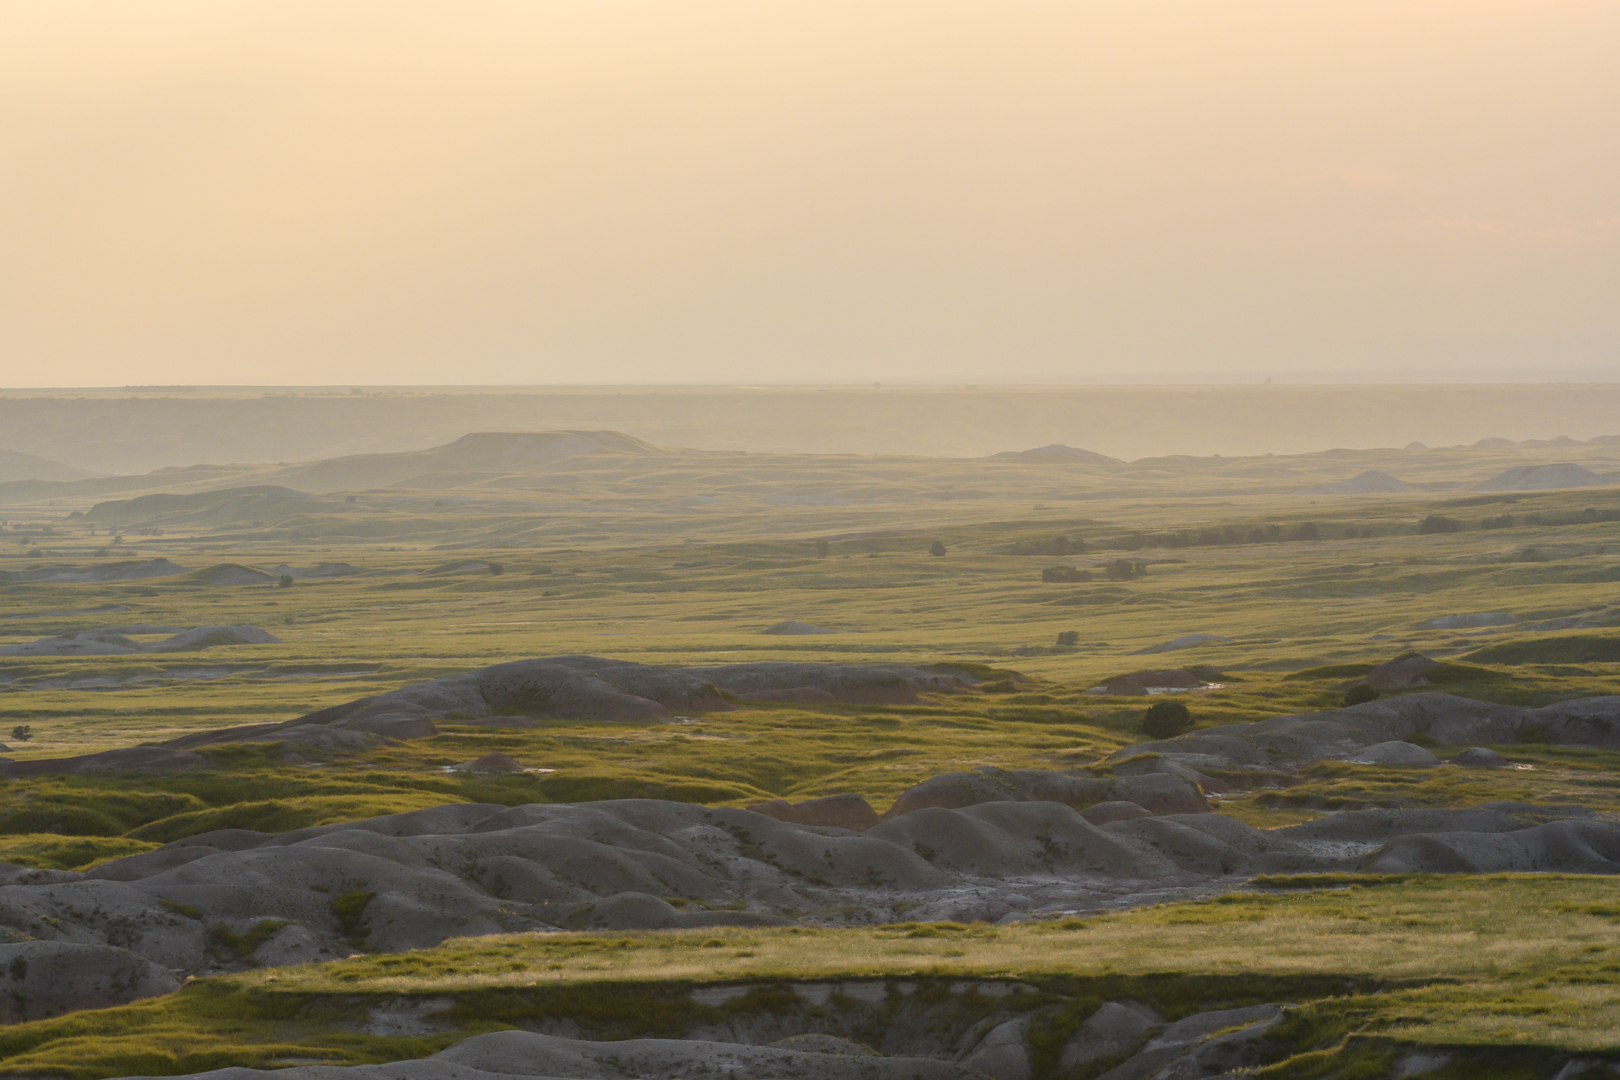 Afternoon Light Fades Over Badlands Formations